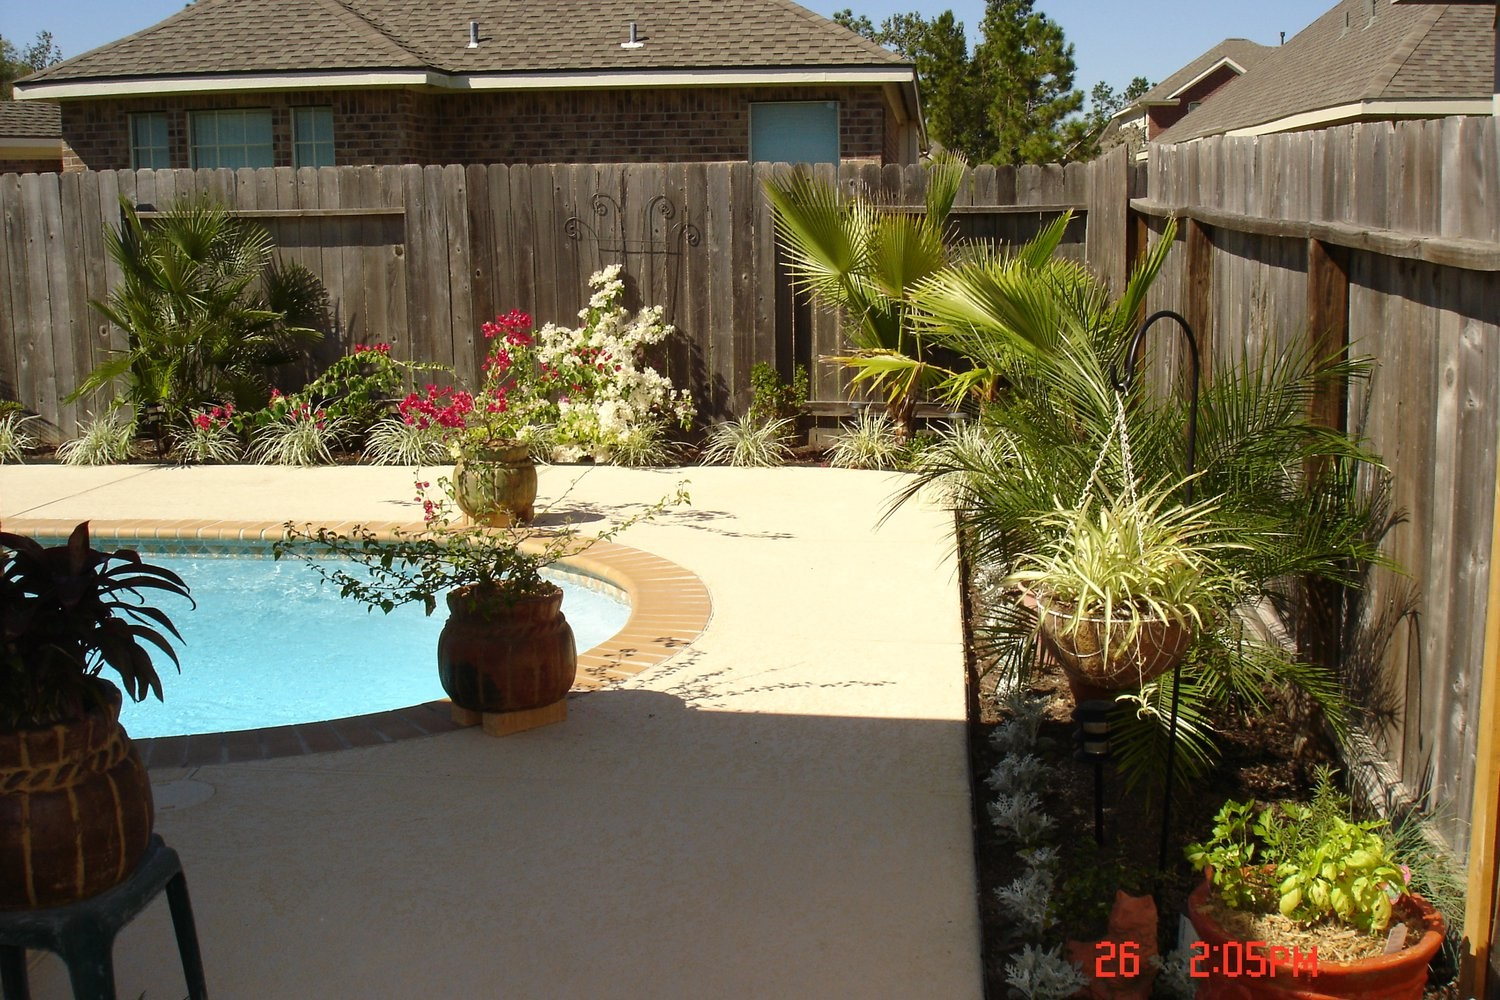 Swimming pool design spring tomball katy houston cypress for Pool design katy